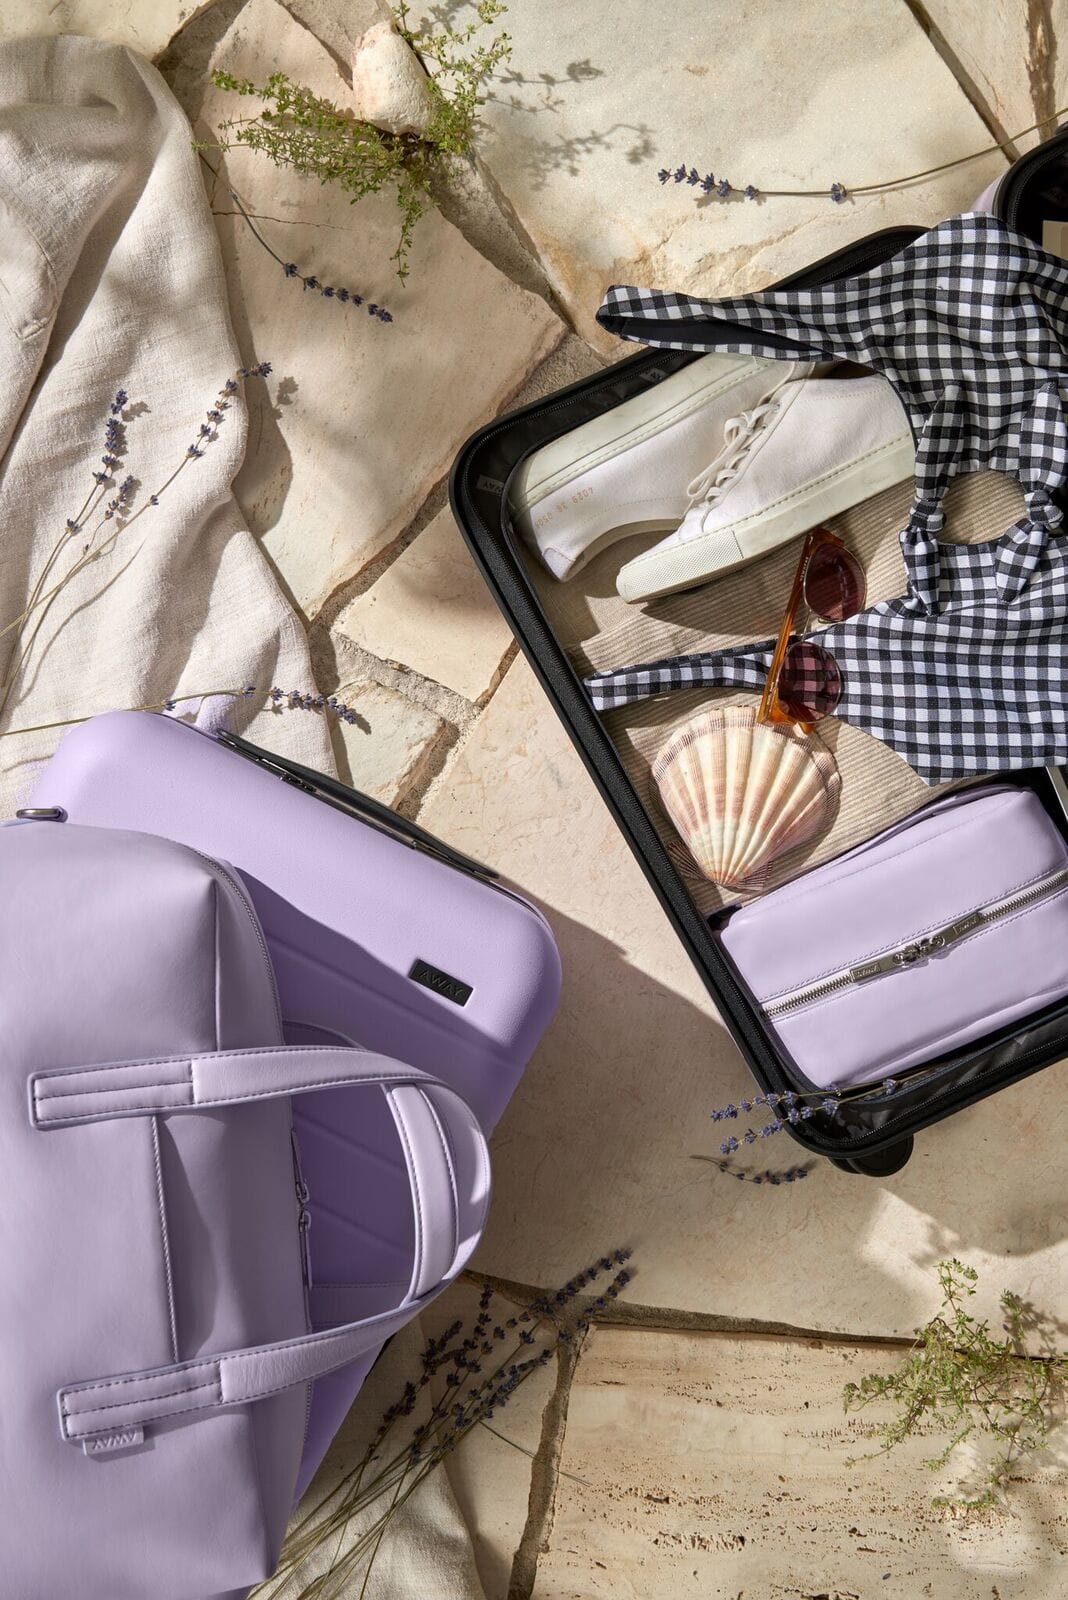 Packing holiday items in a small carry on suitcase with accessories